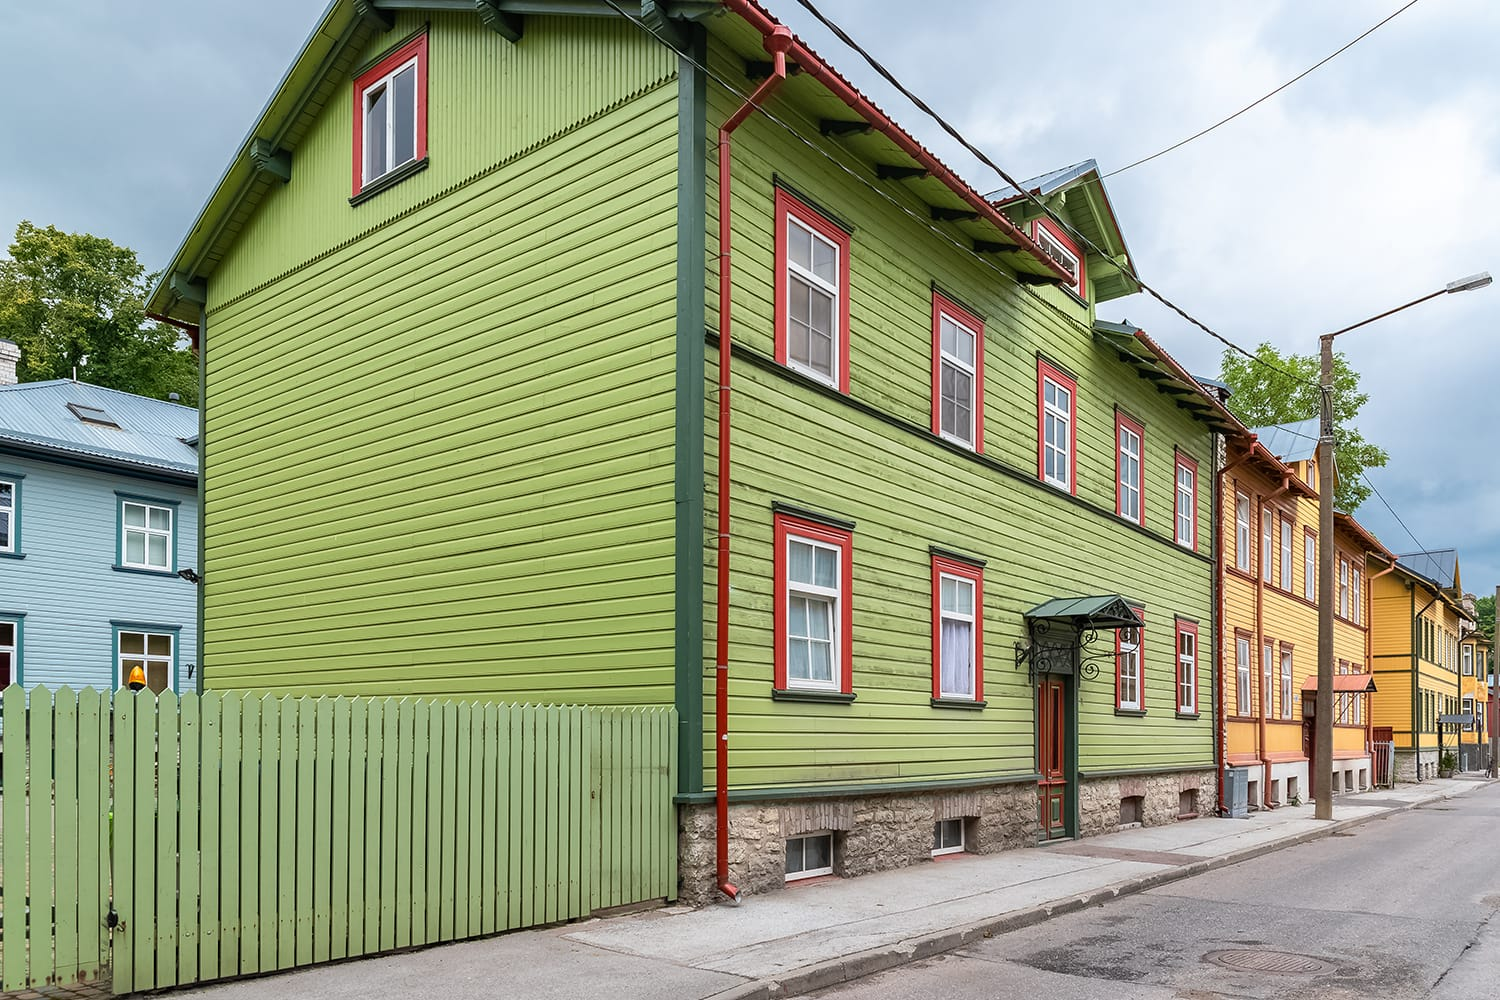 Tallinn in Estonia, wooden colorful houses, typical facades in Kalamaja